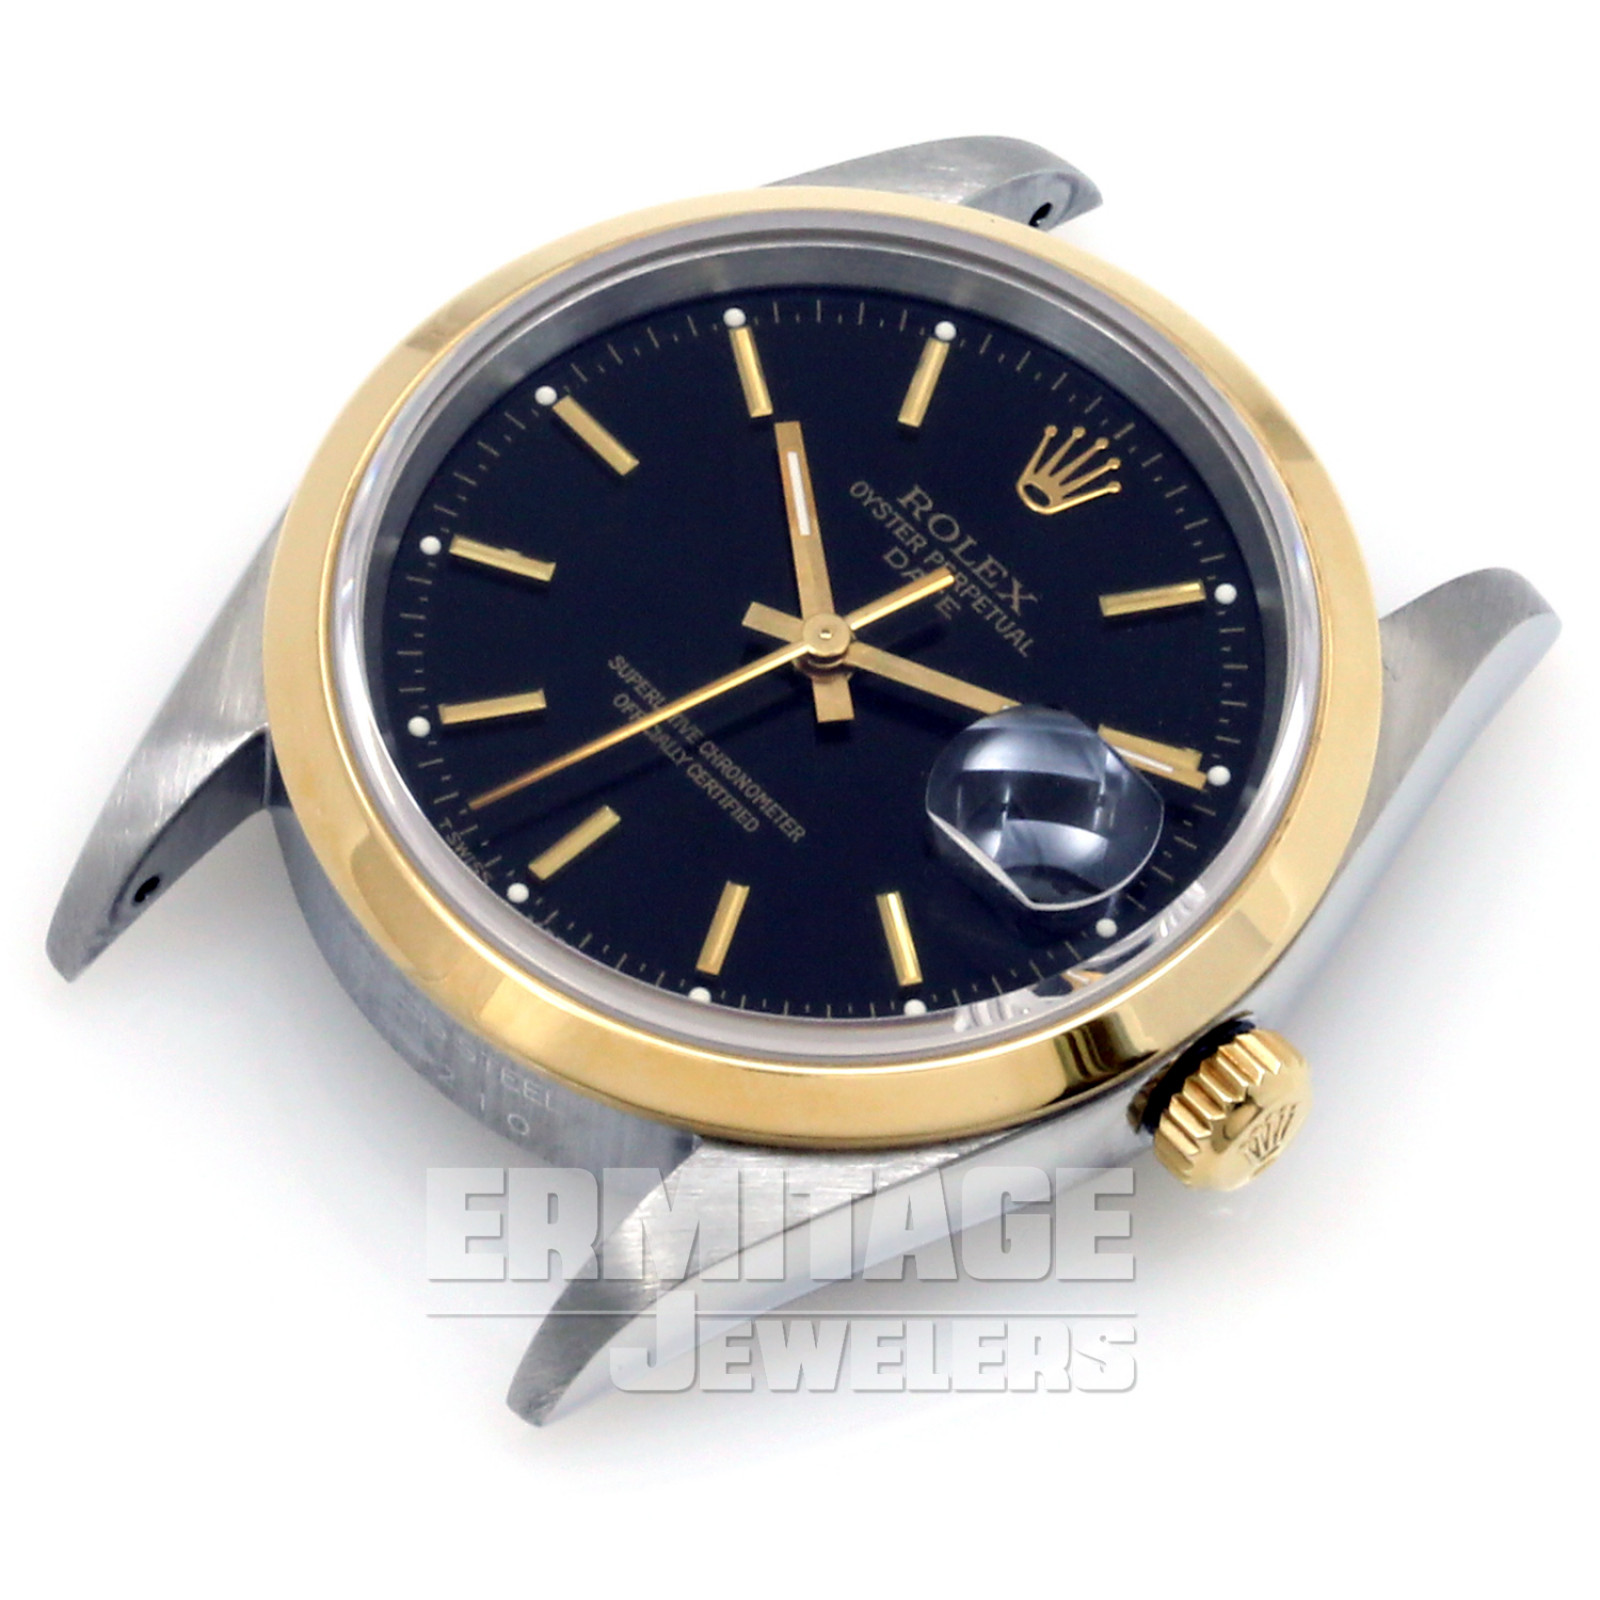 Pre-Owned Rolex Date 15203 with Black Dial